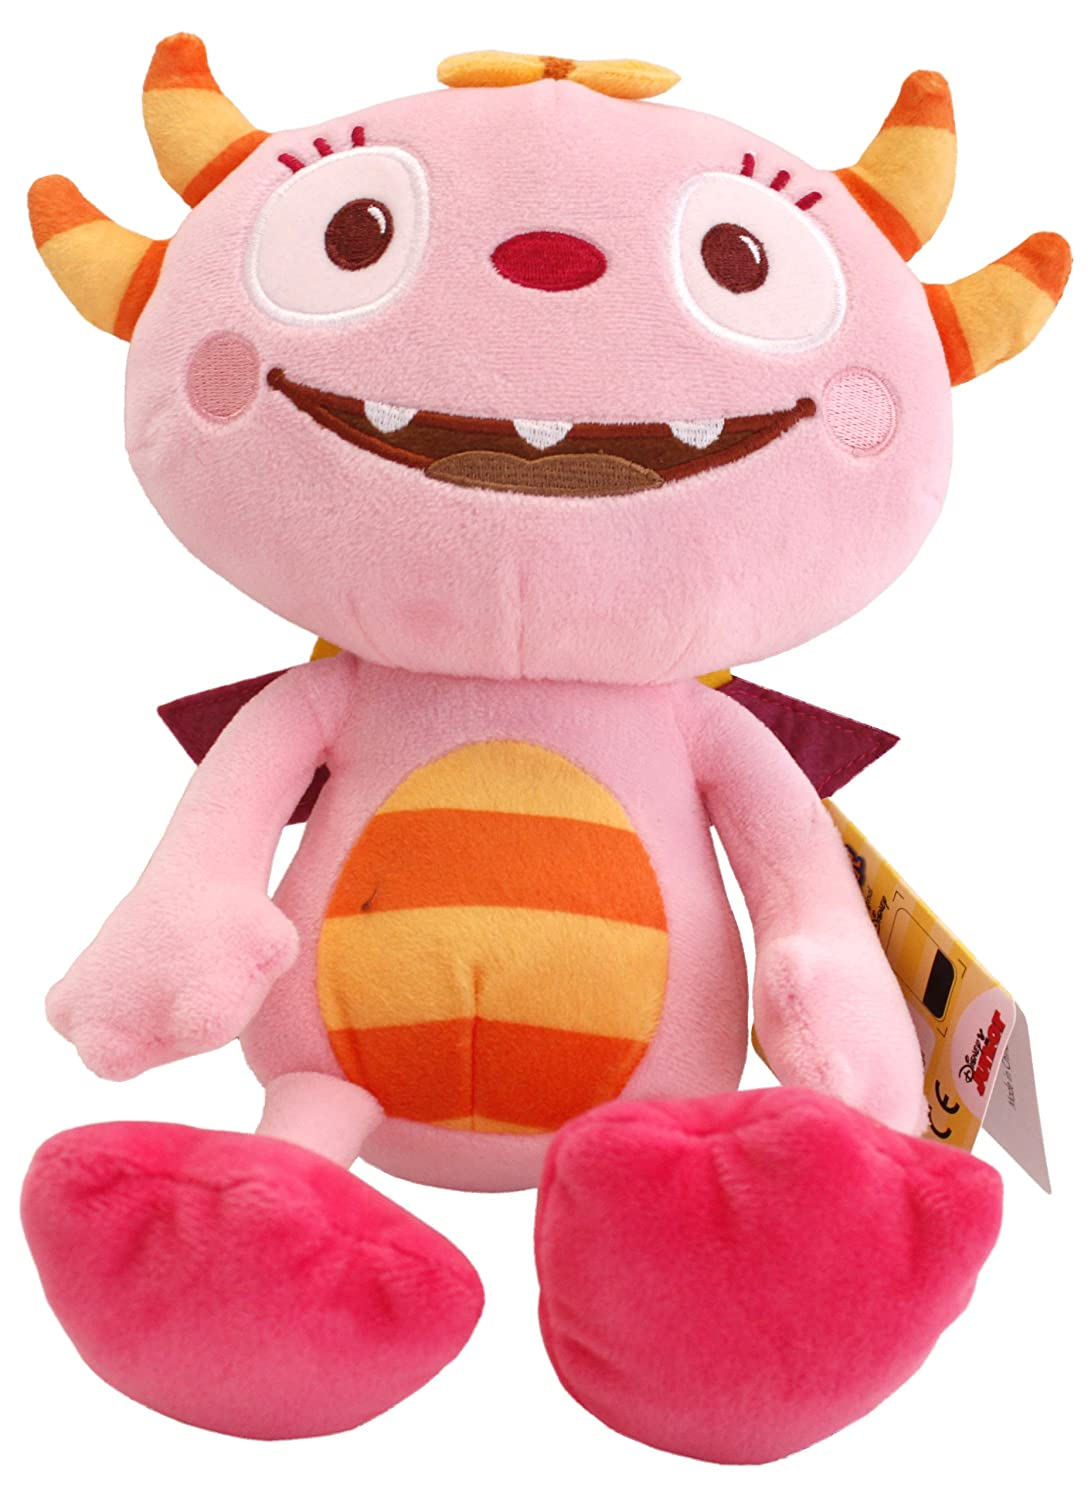 Golden Bear - Peluche Henry Hugglemonster (5019)